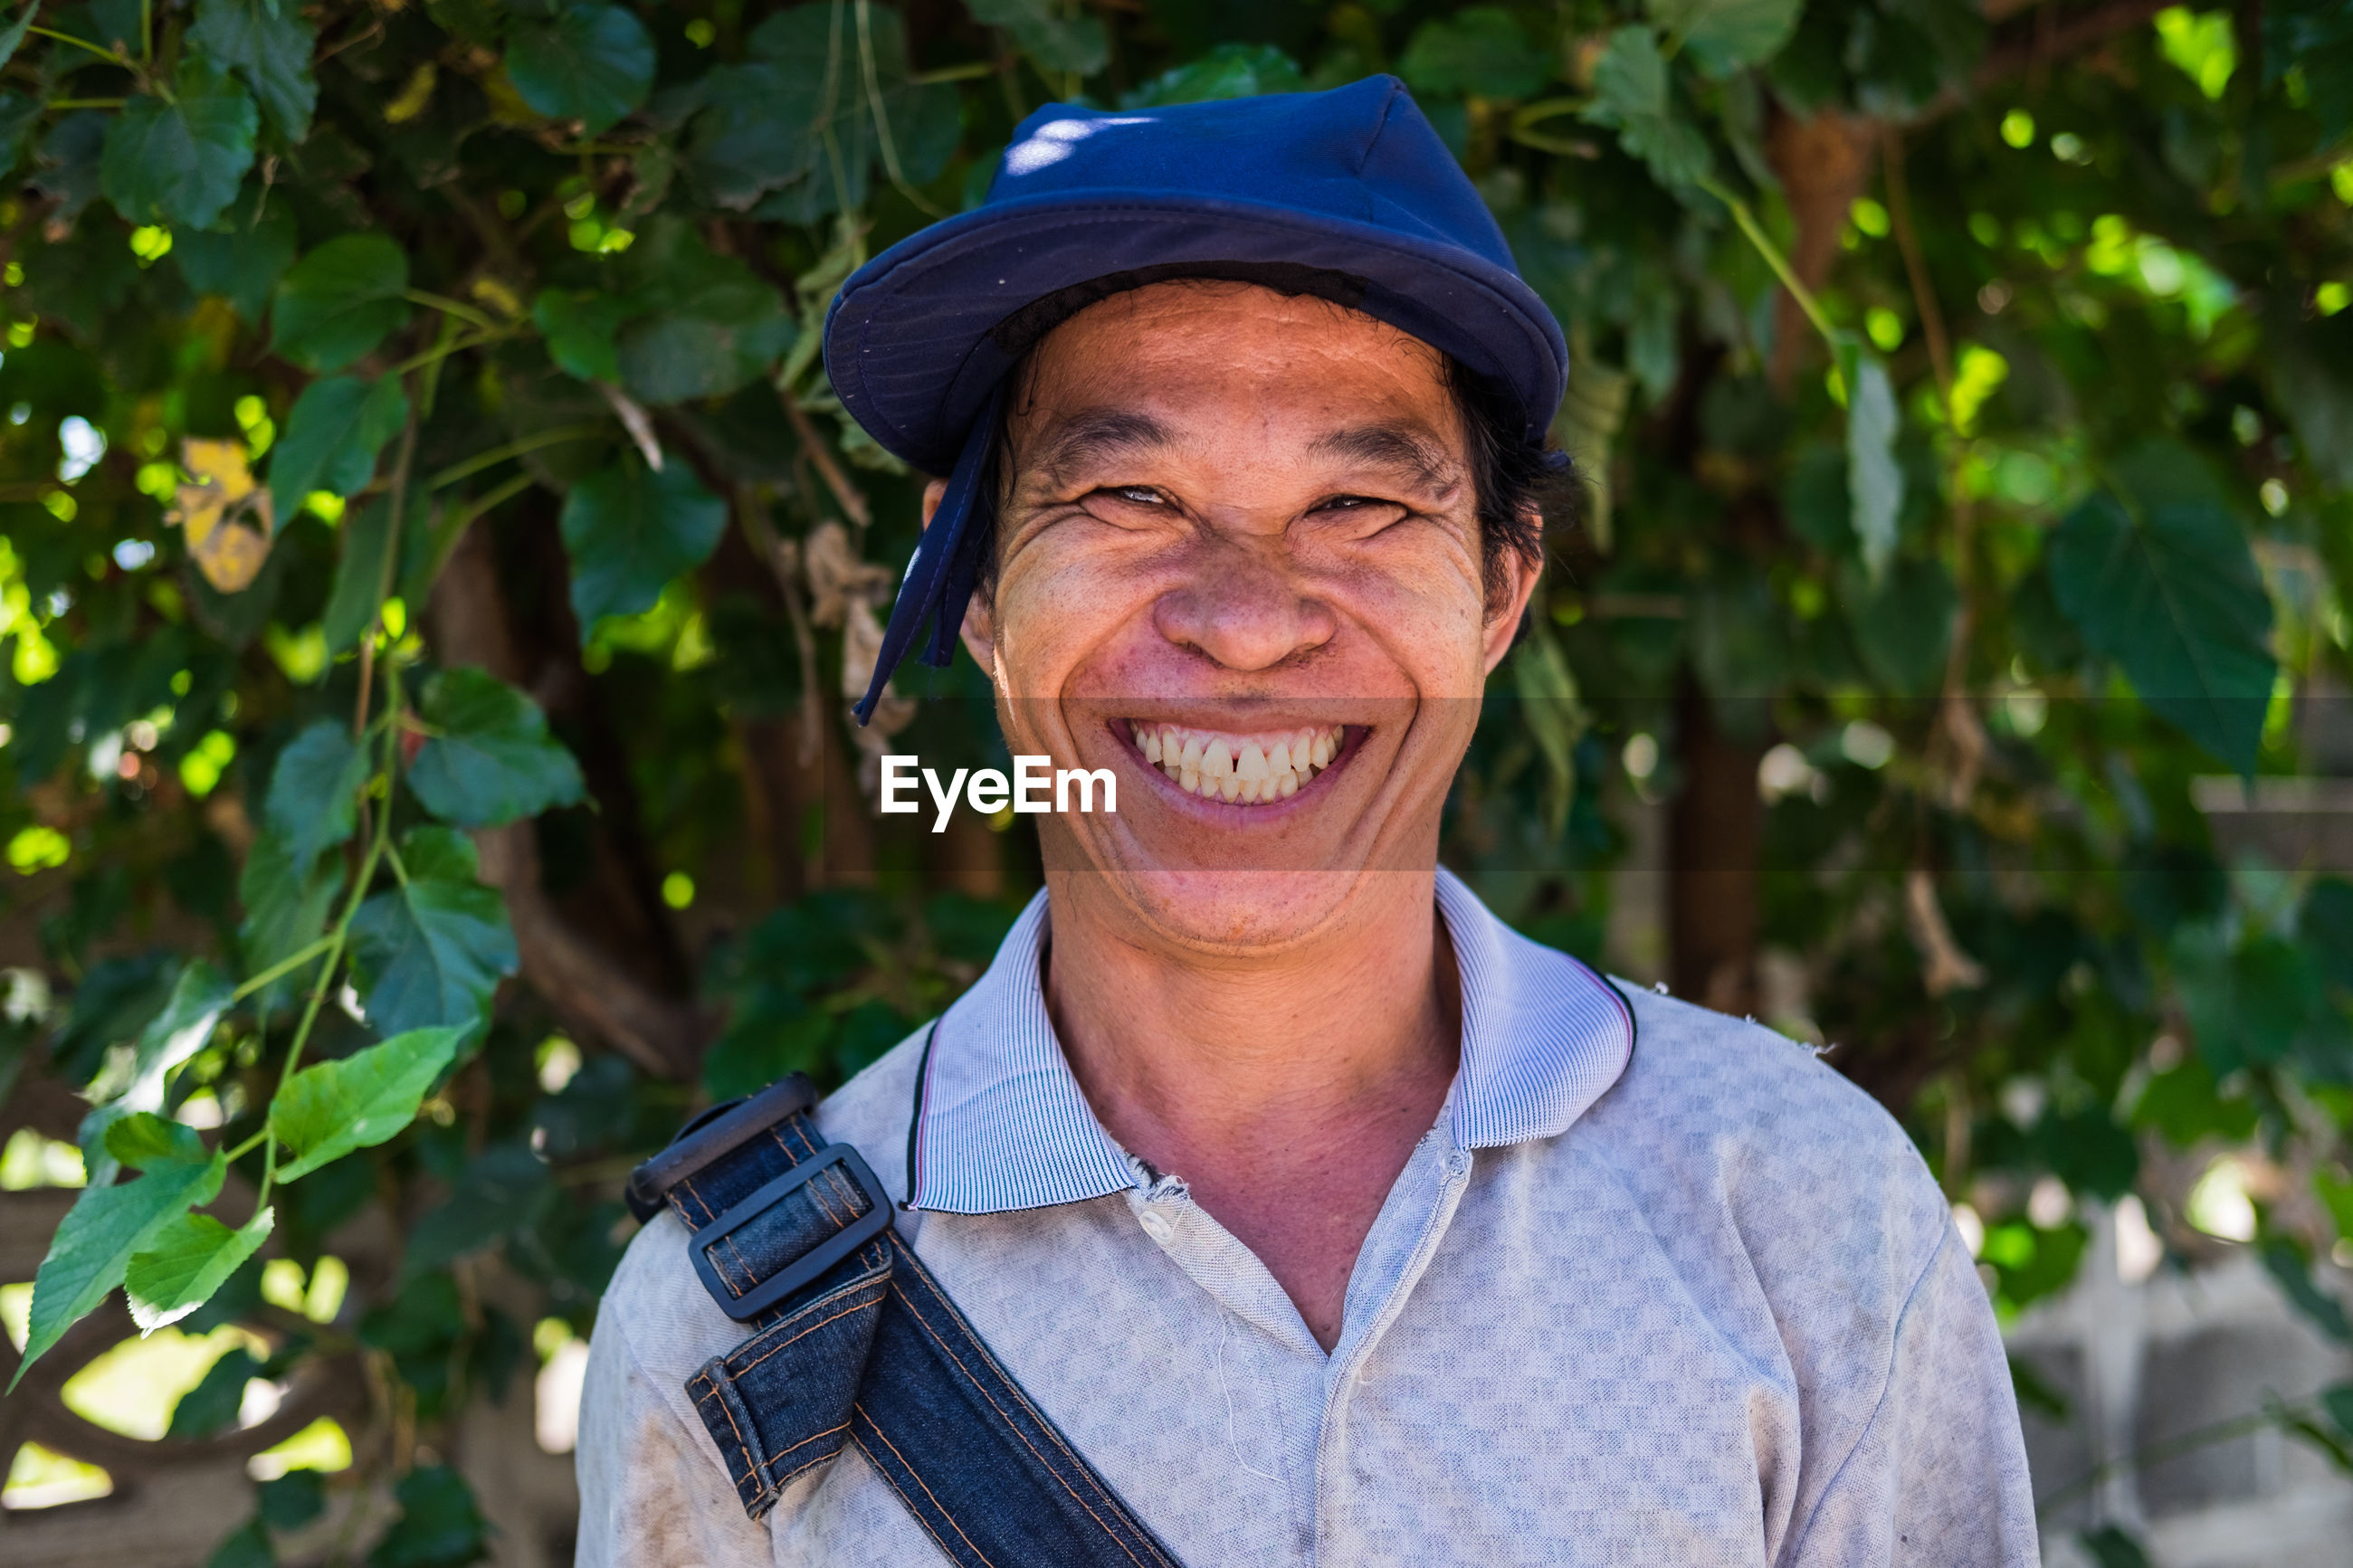 Close-up portrait of smiling man against trees